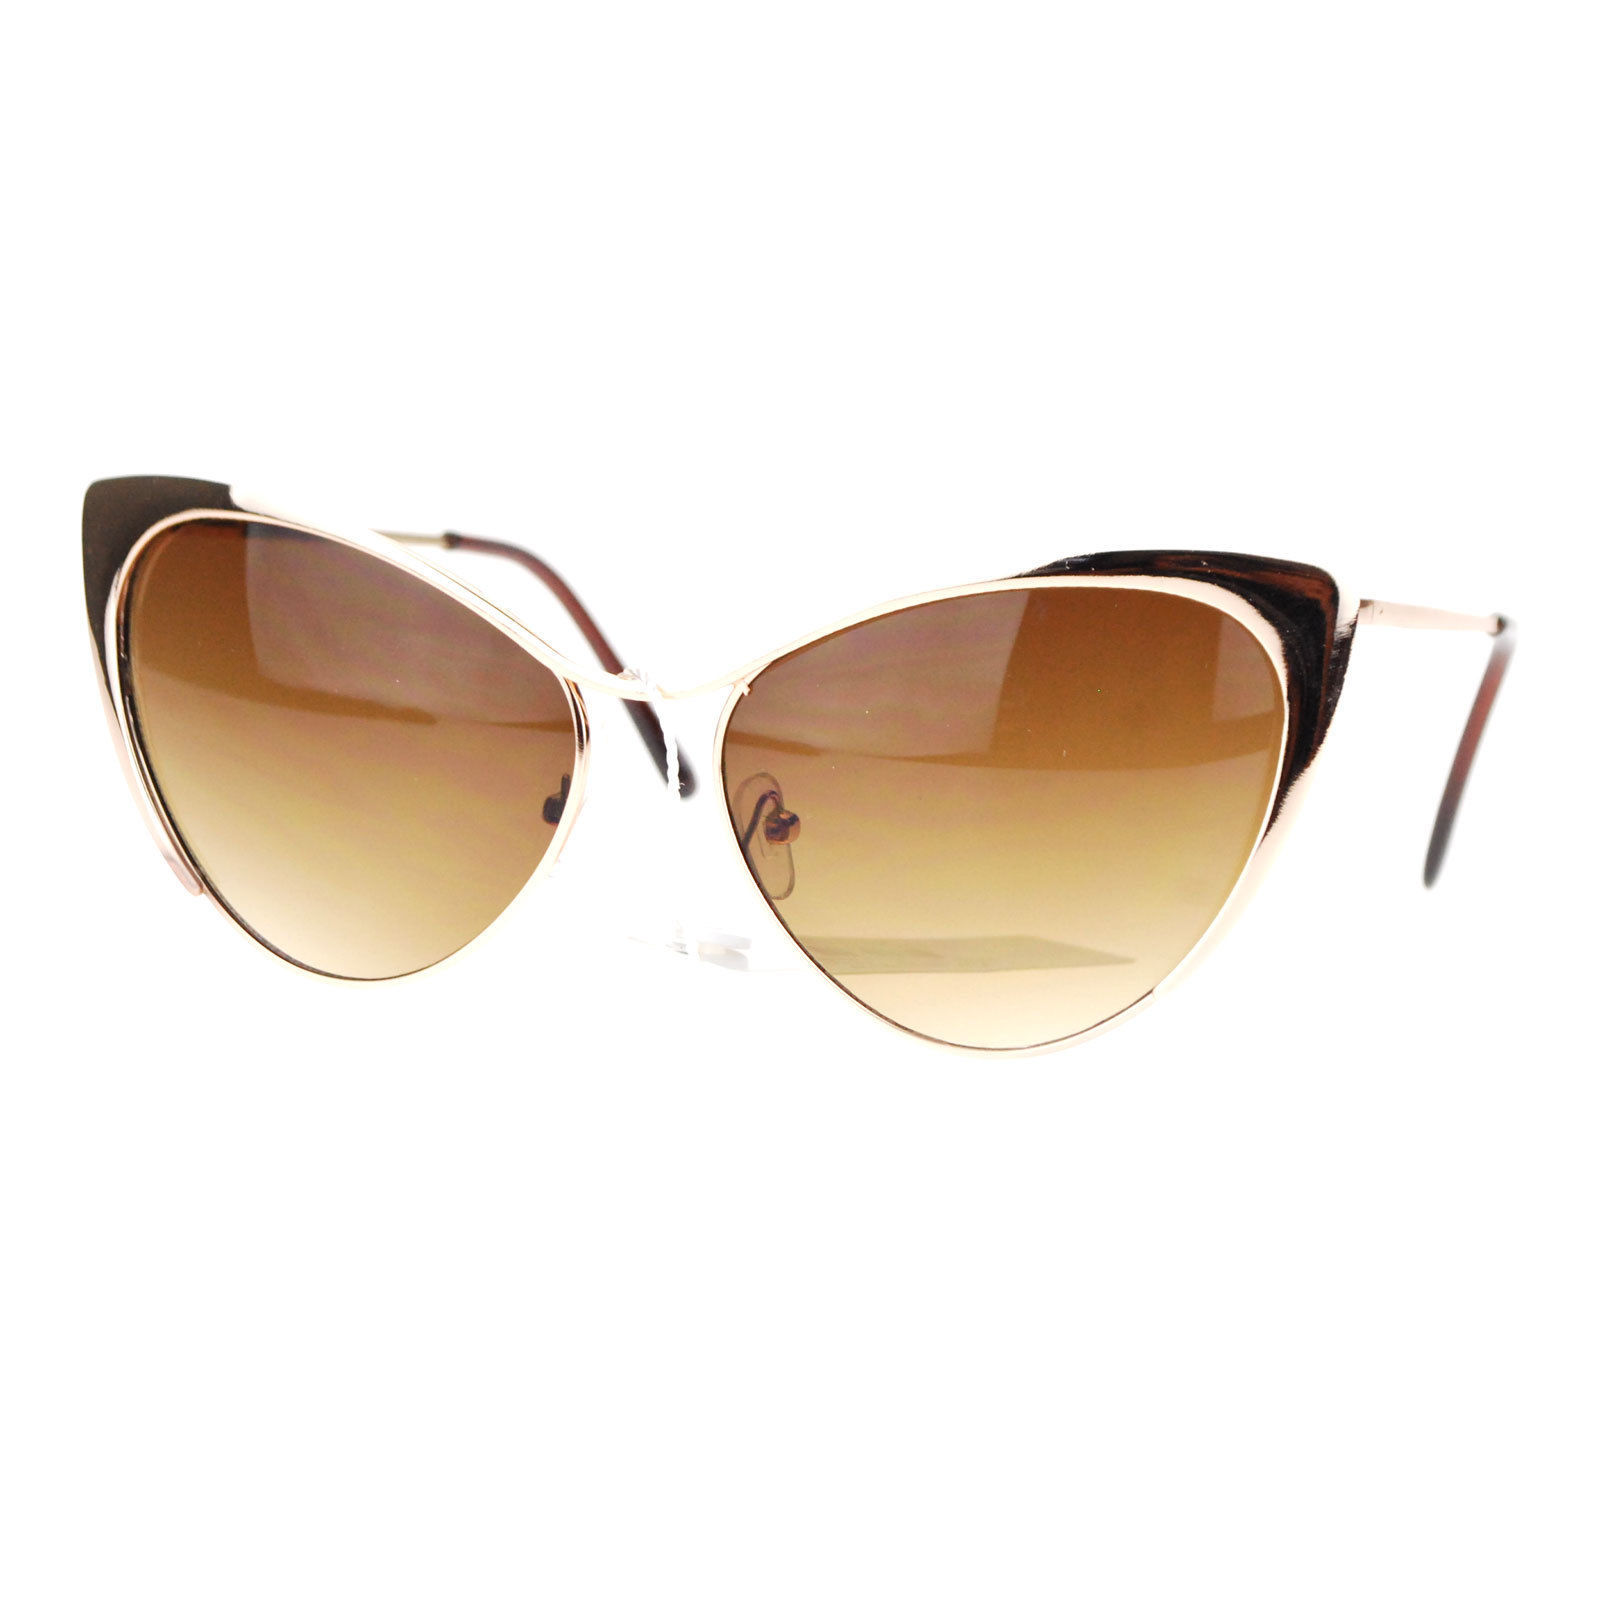 Womens Cateye Sunglasses Gold/Silver Metal Frame Spring Hinge UV 400